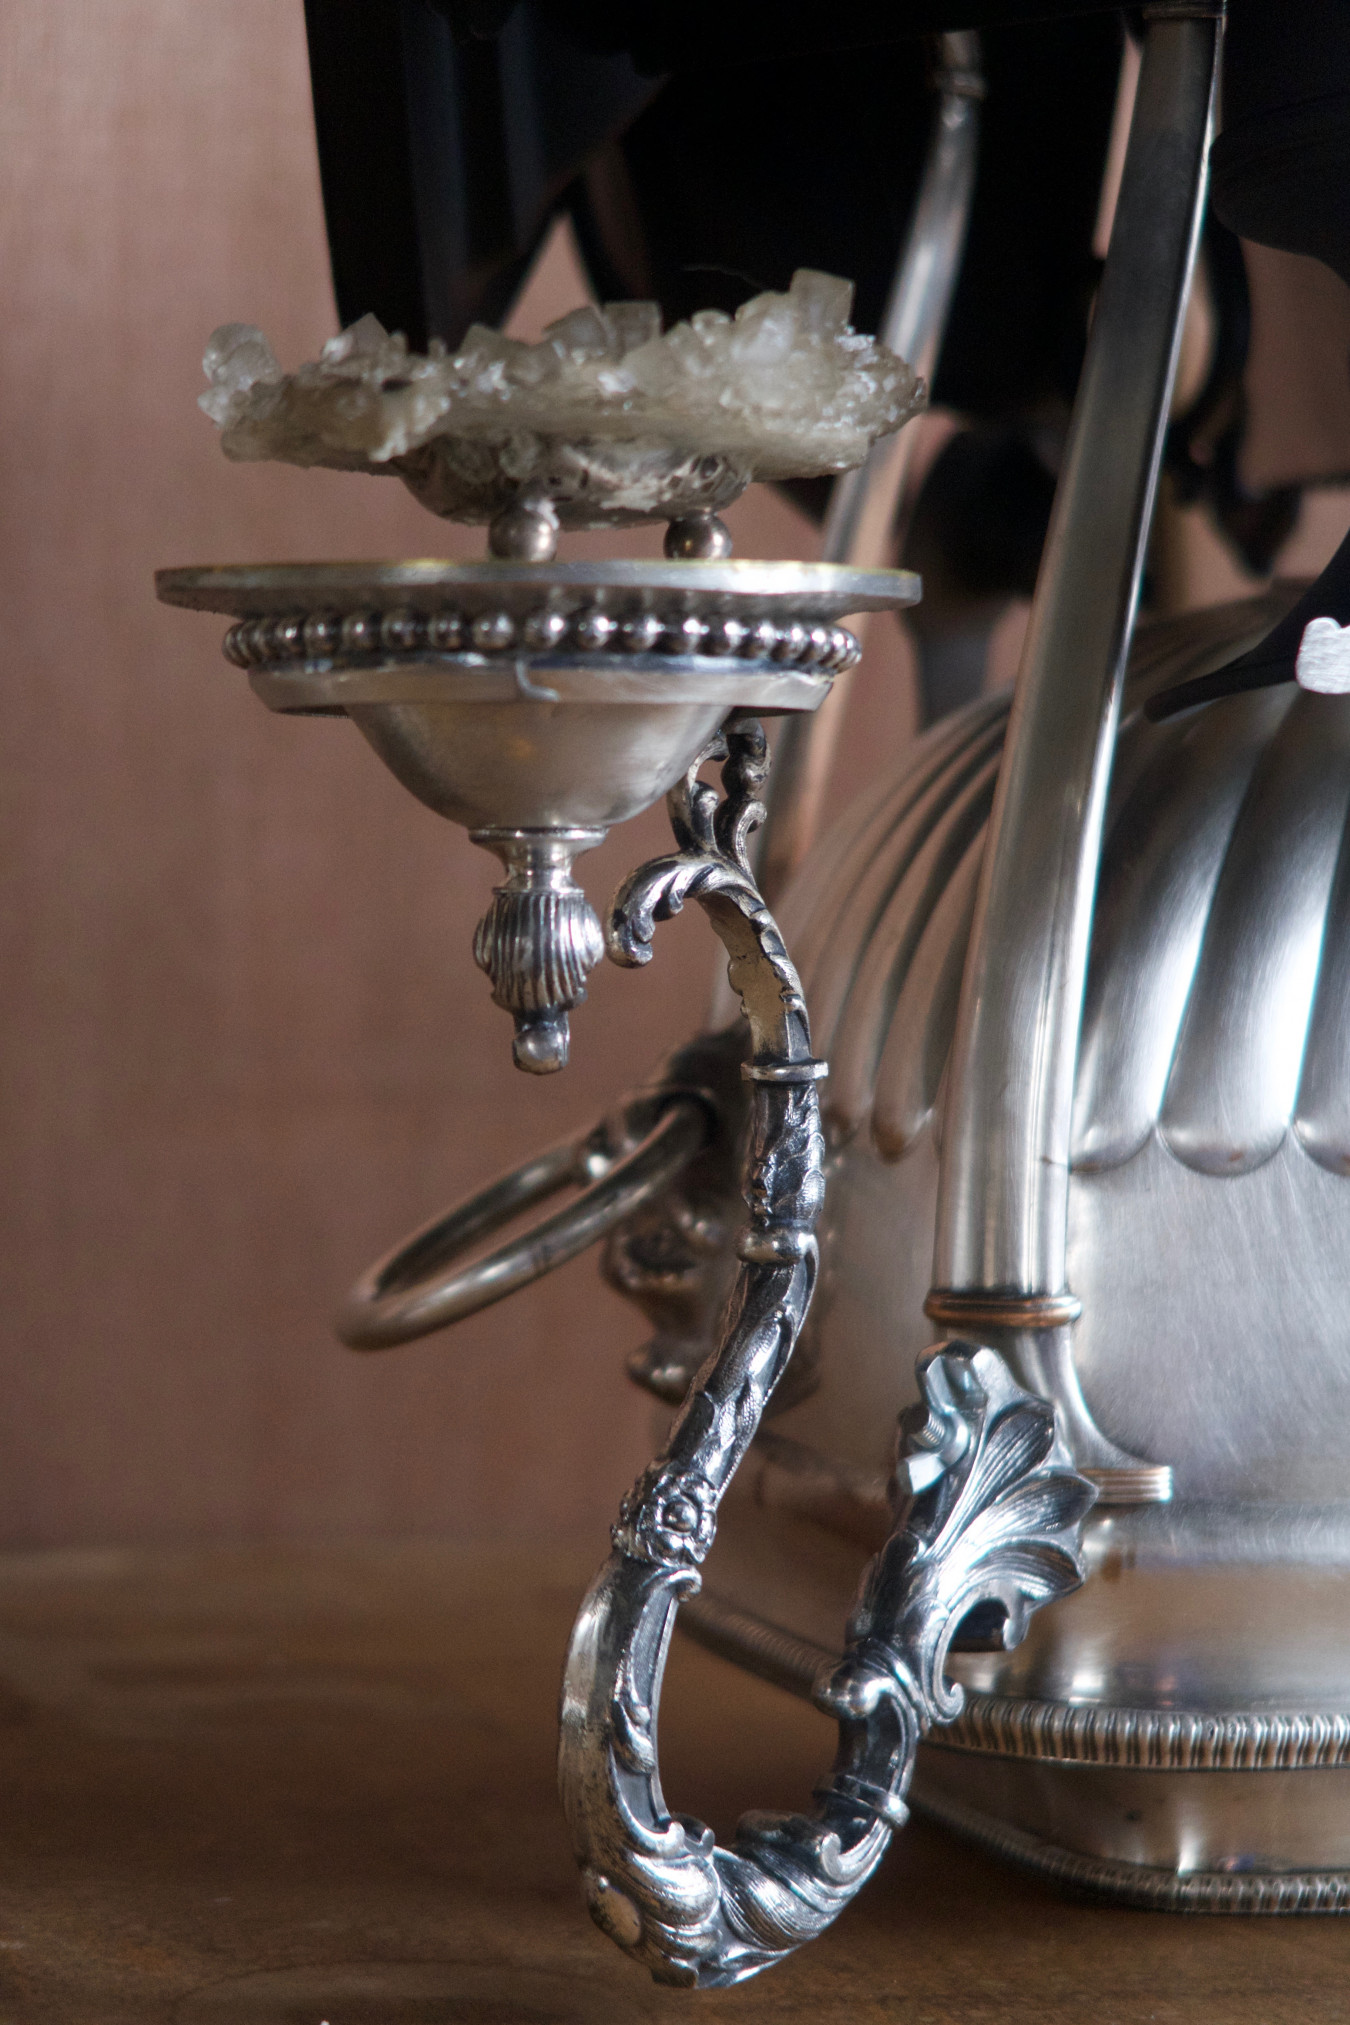 Detail image of a silver sugar sweetheart dish, presented on an arm that extends out from the main body of the centrepiece.